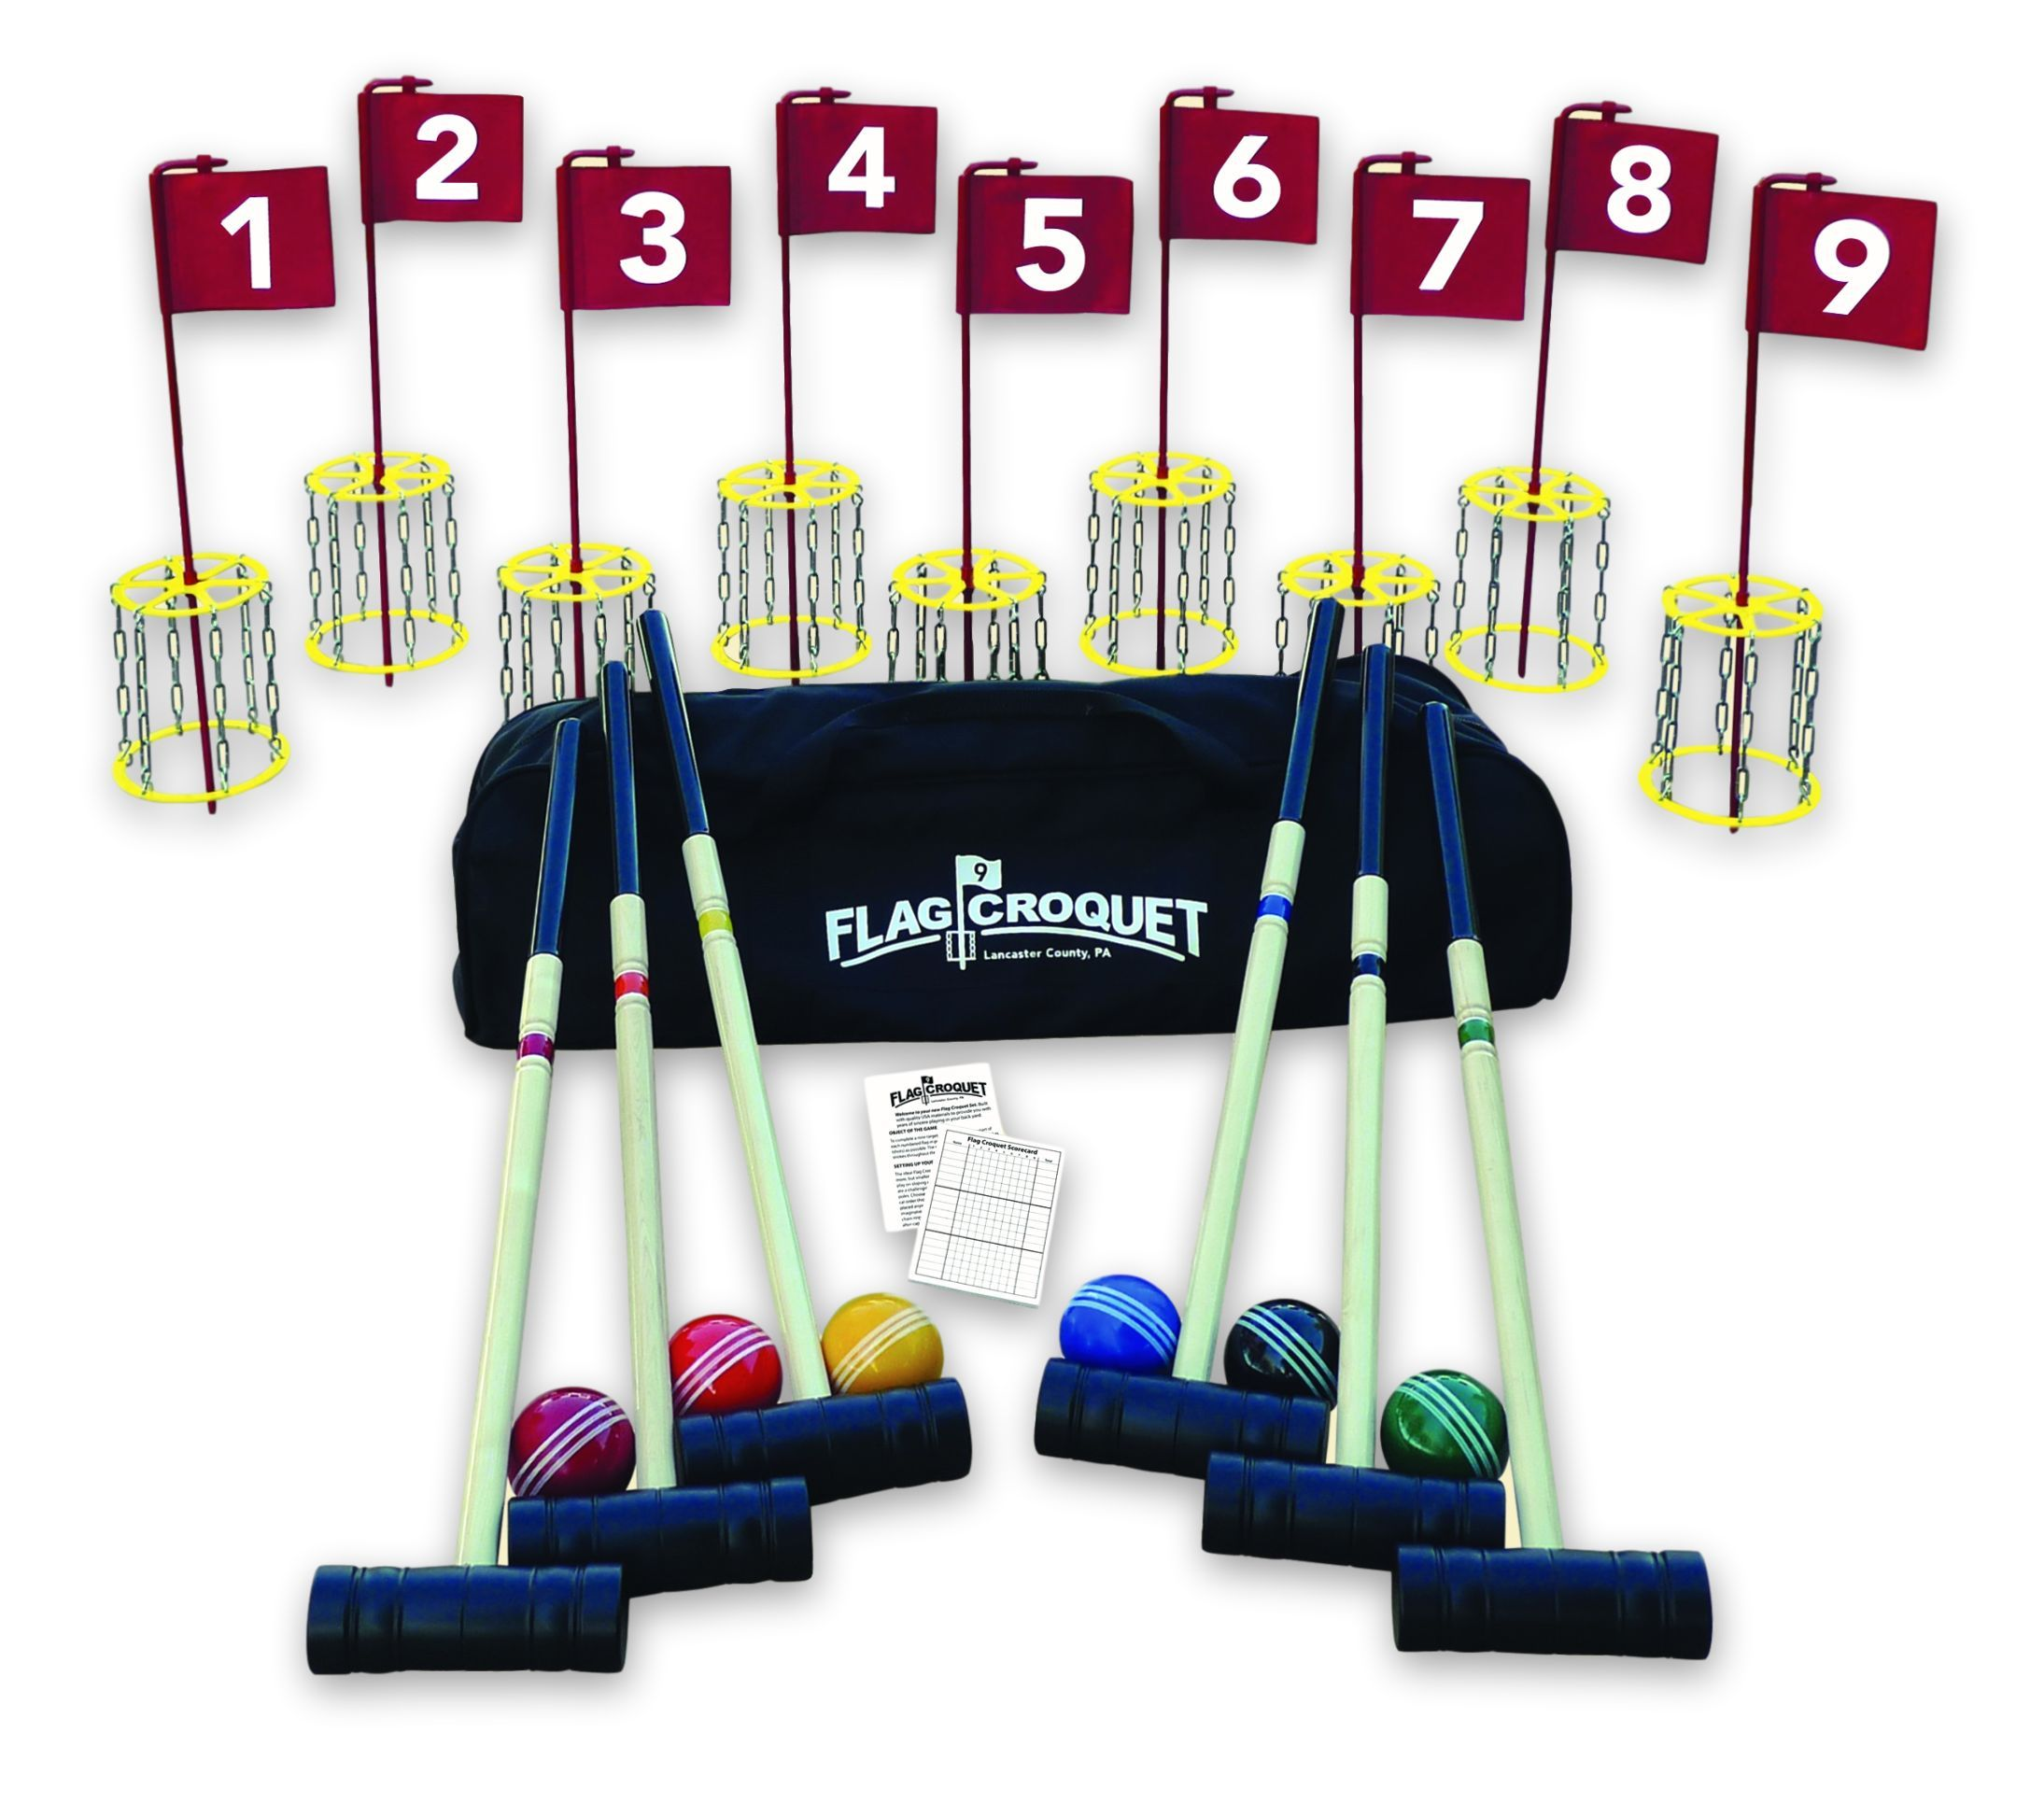 NEW! AmishMade Deluxe Flag Croquet Golf Game Set Cheap